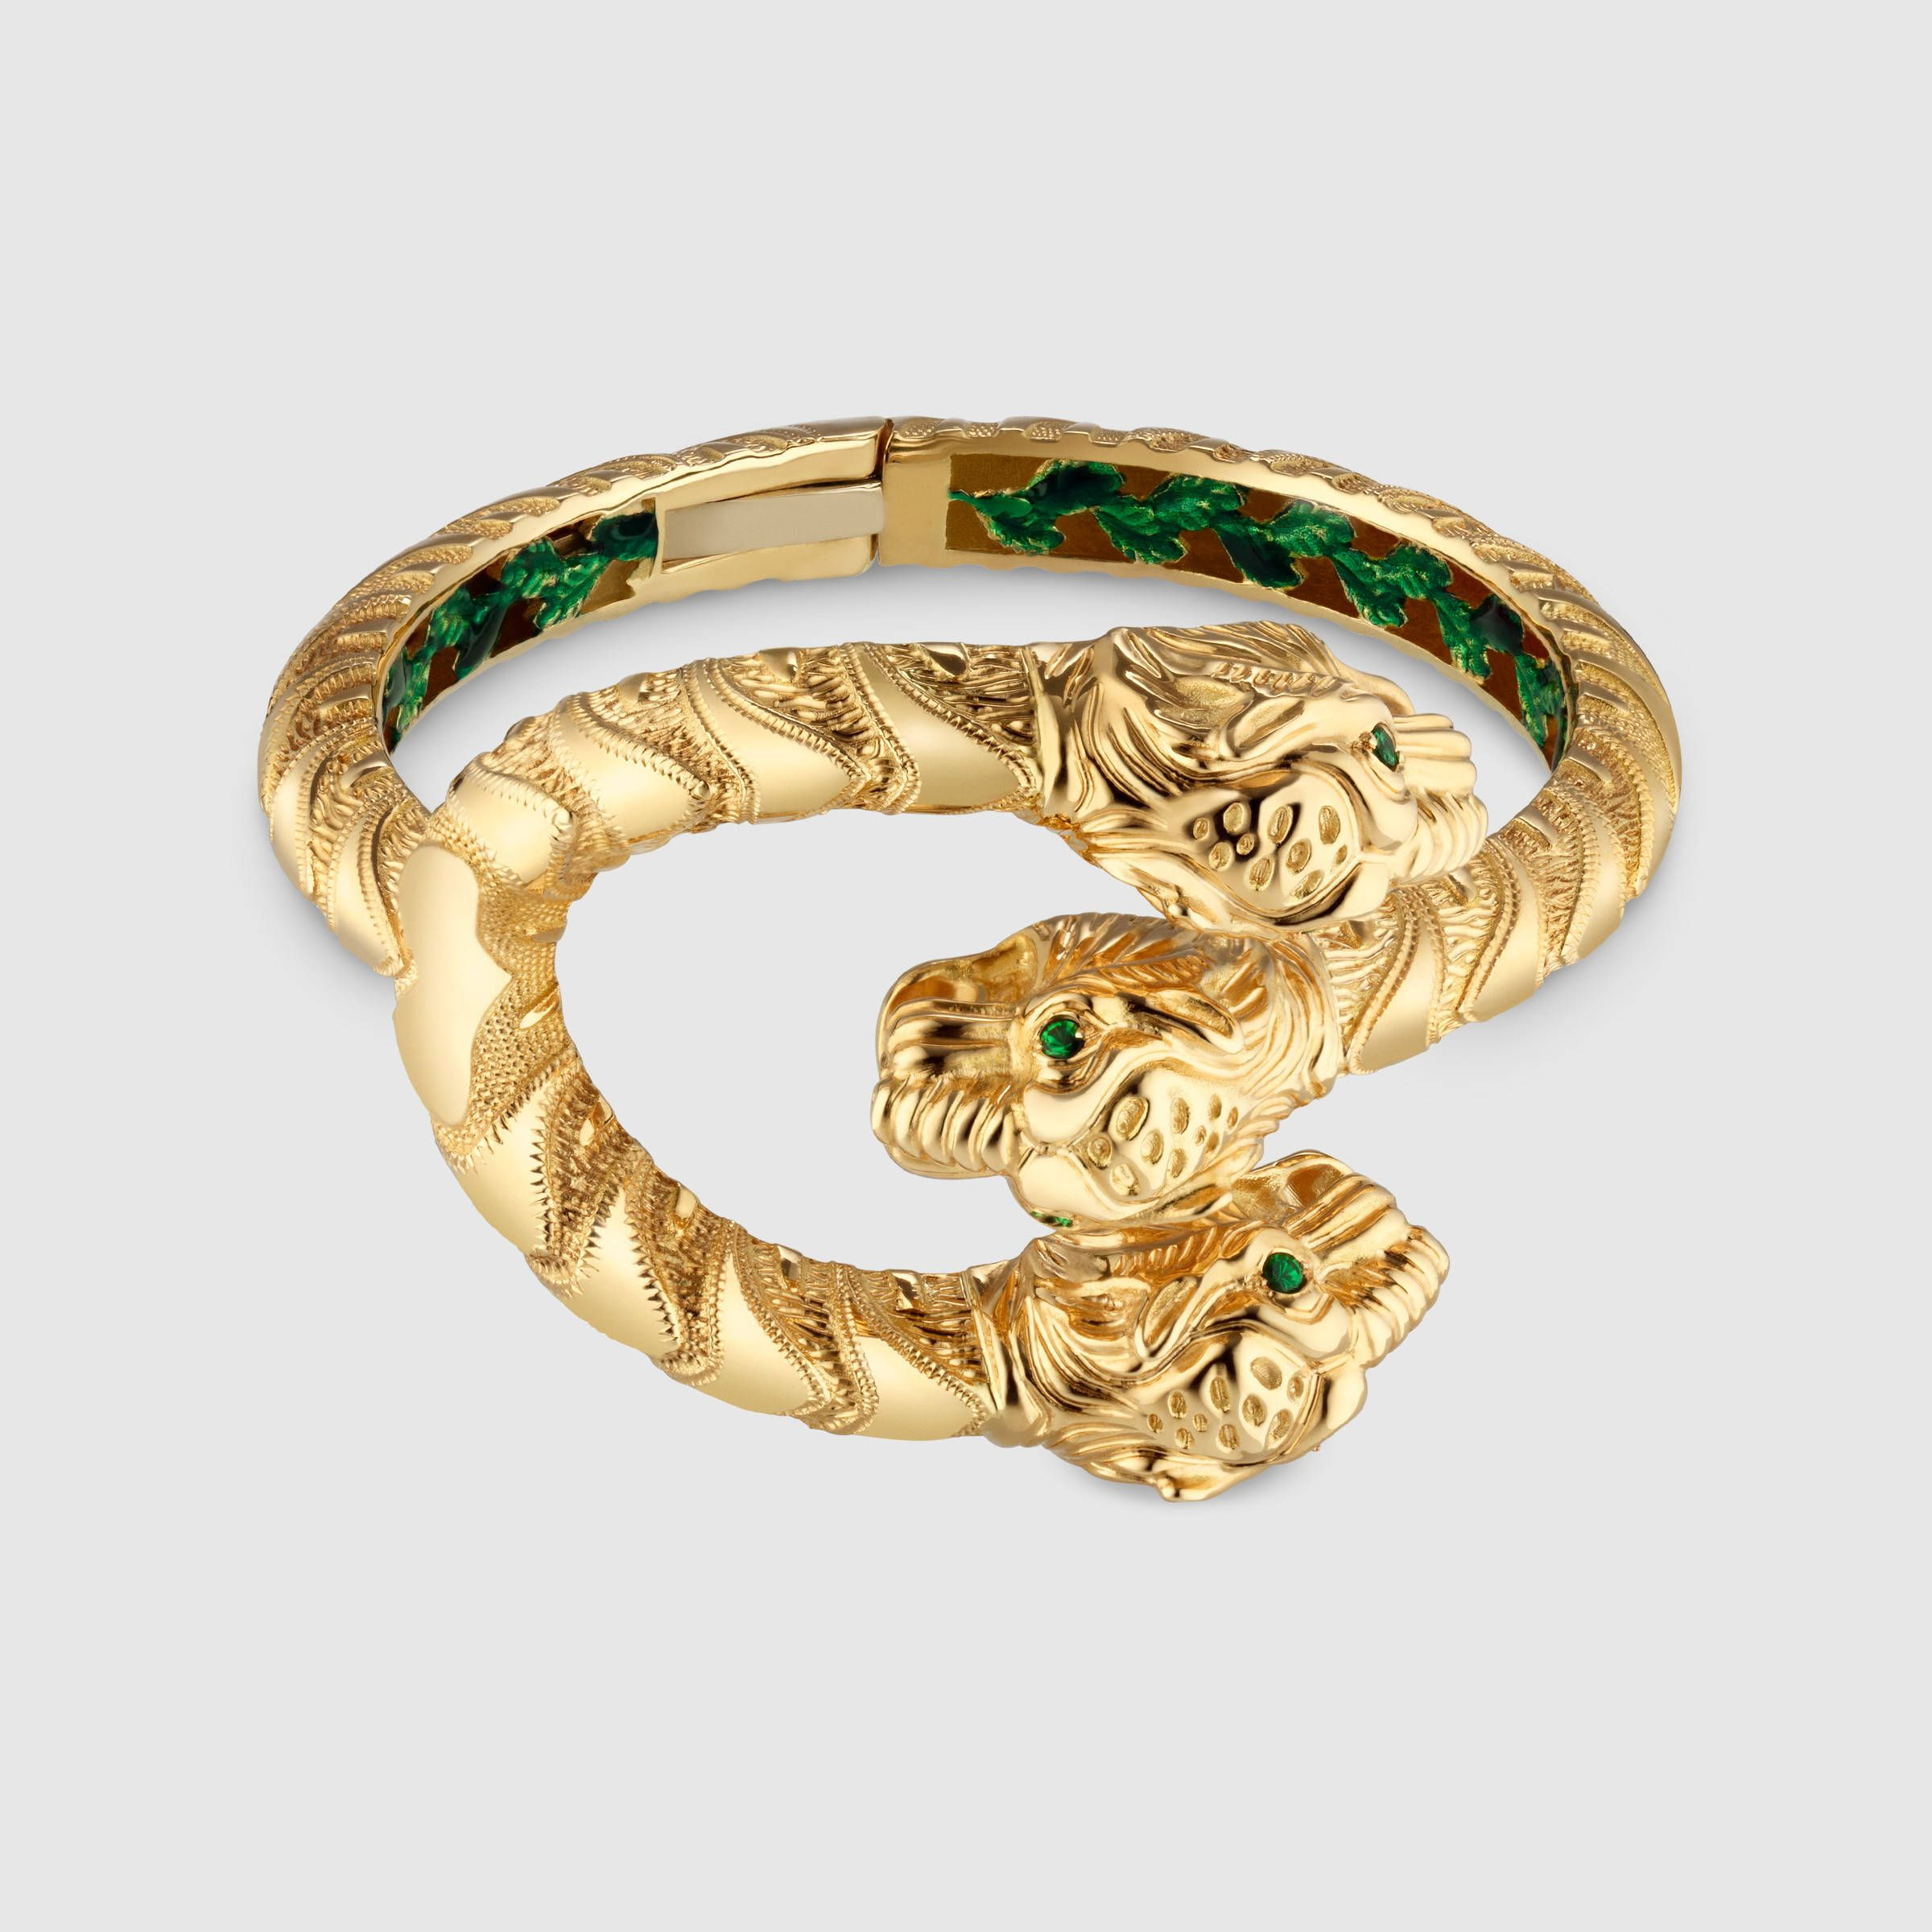 Gucci Dionysus yellow gold ring